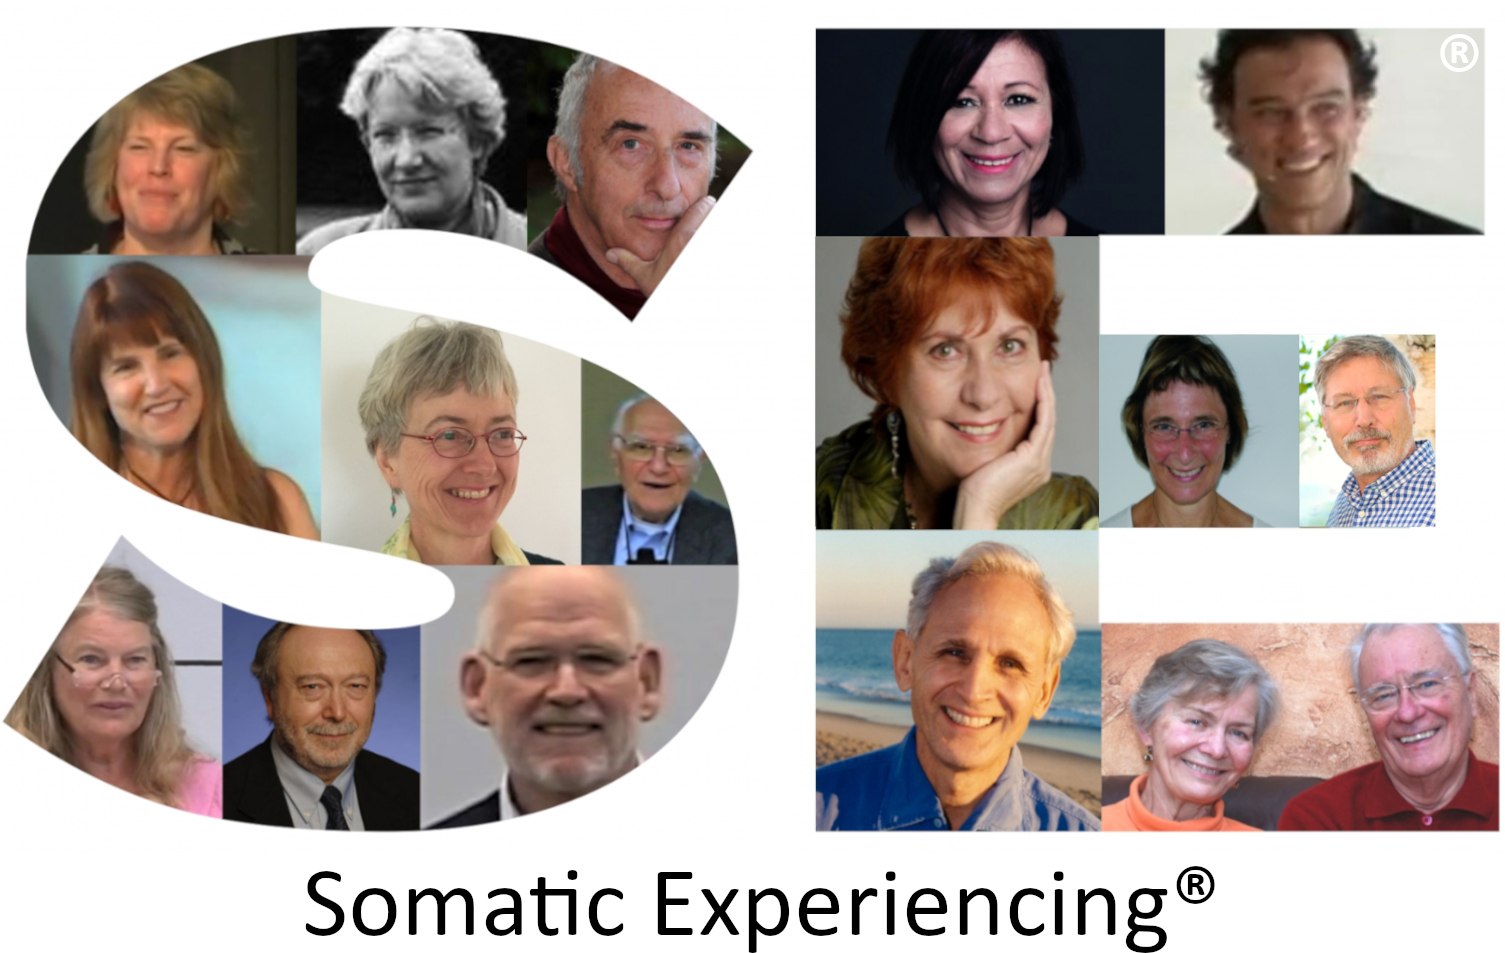 Somatic-Experiencing60d03616e56eb